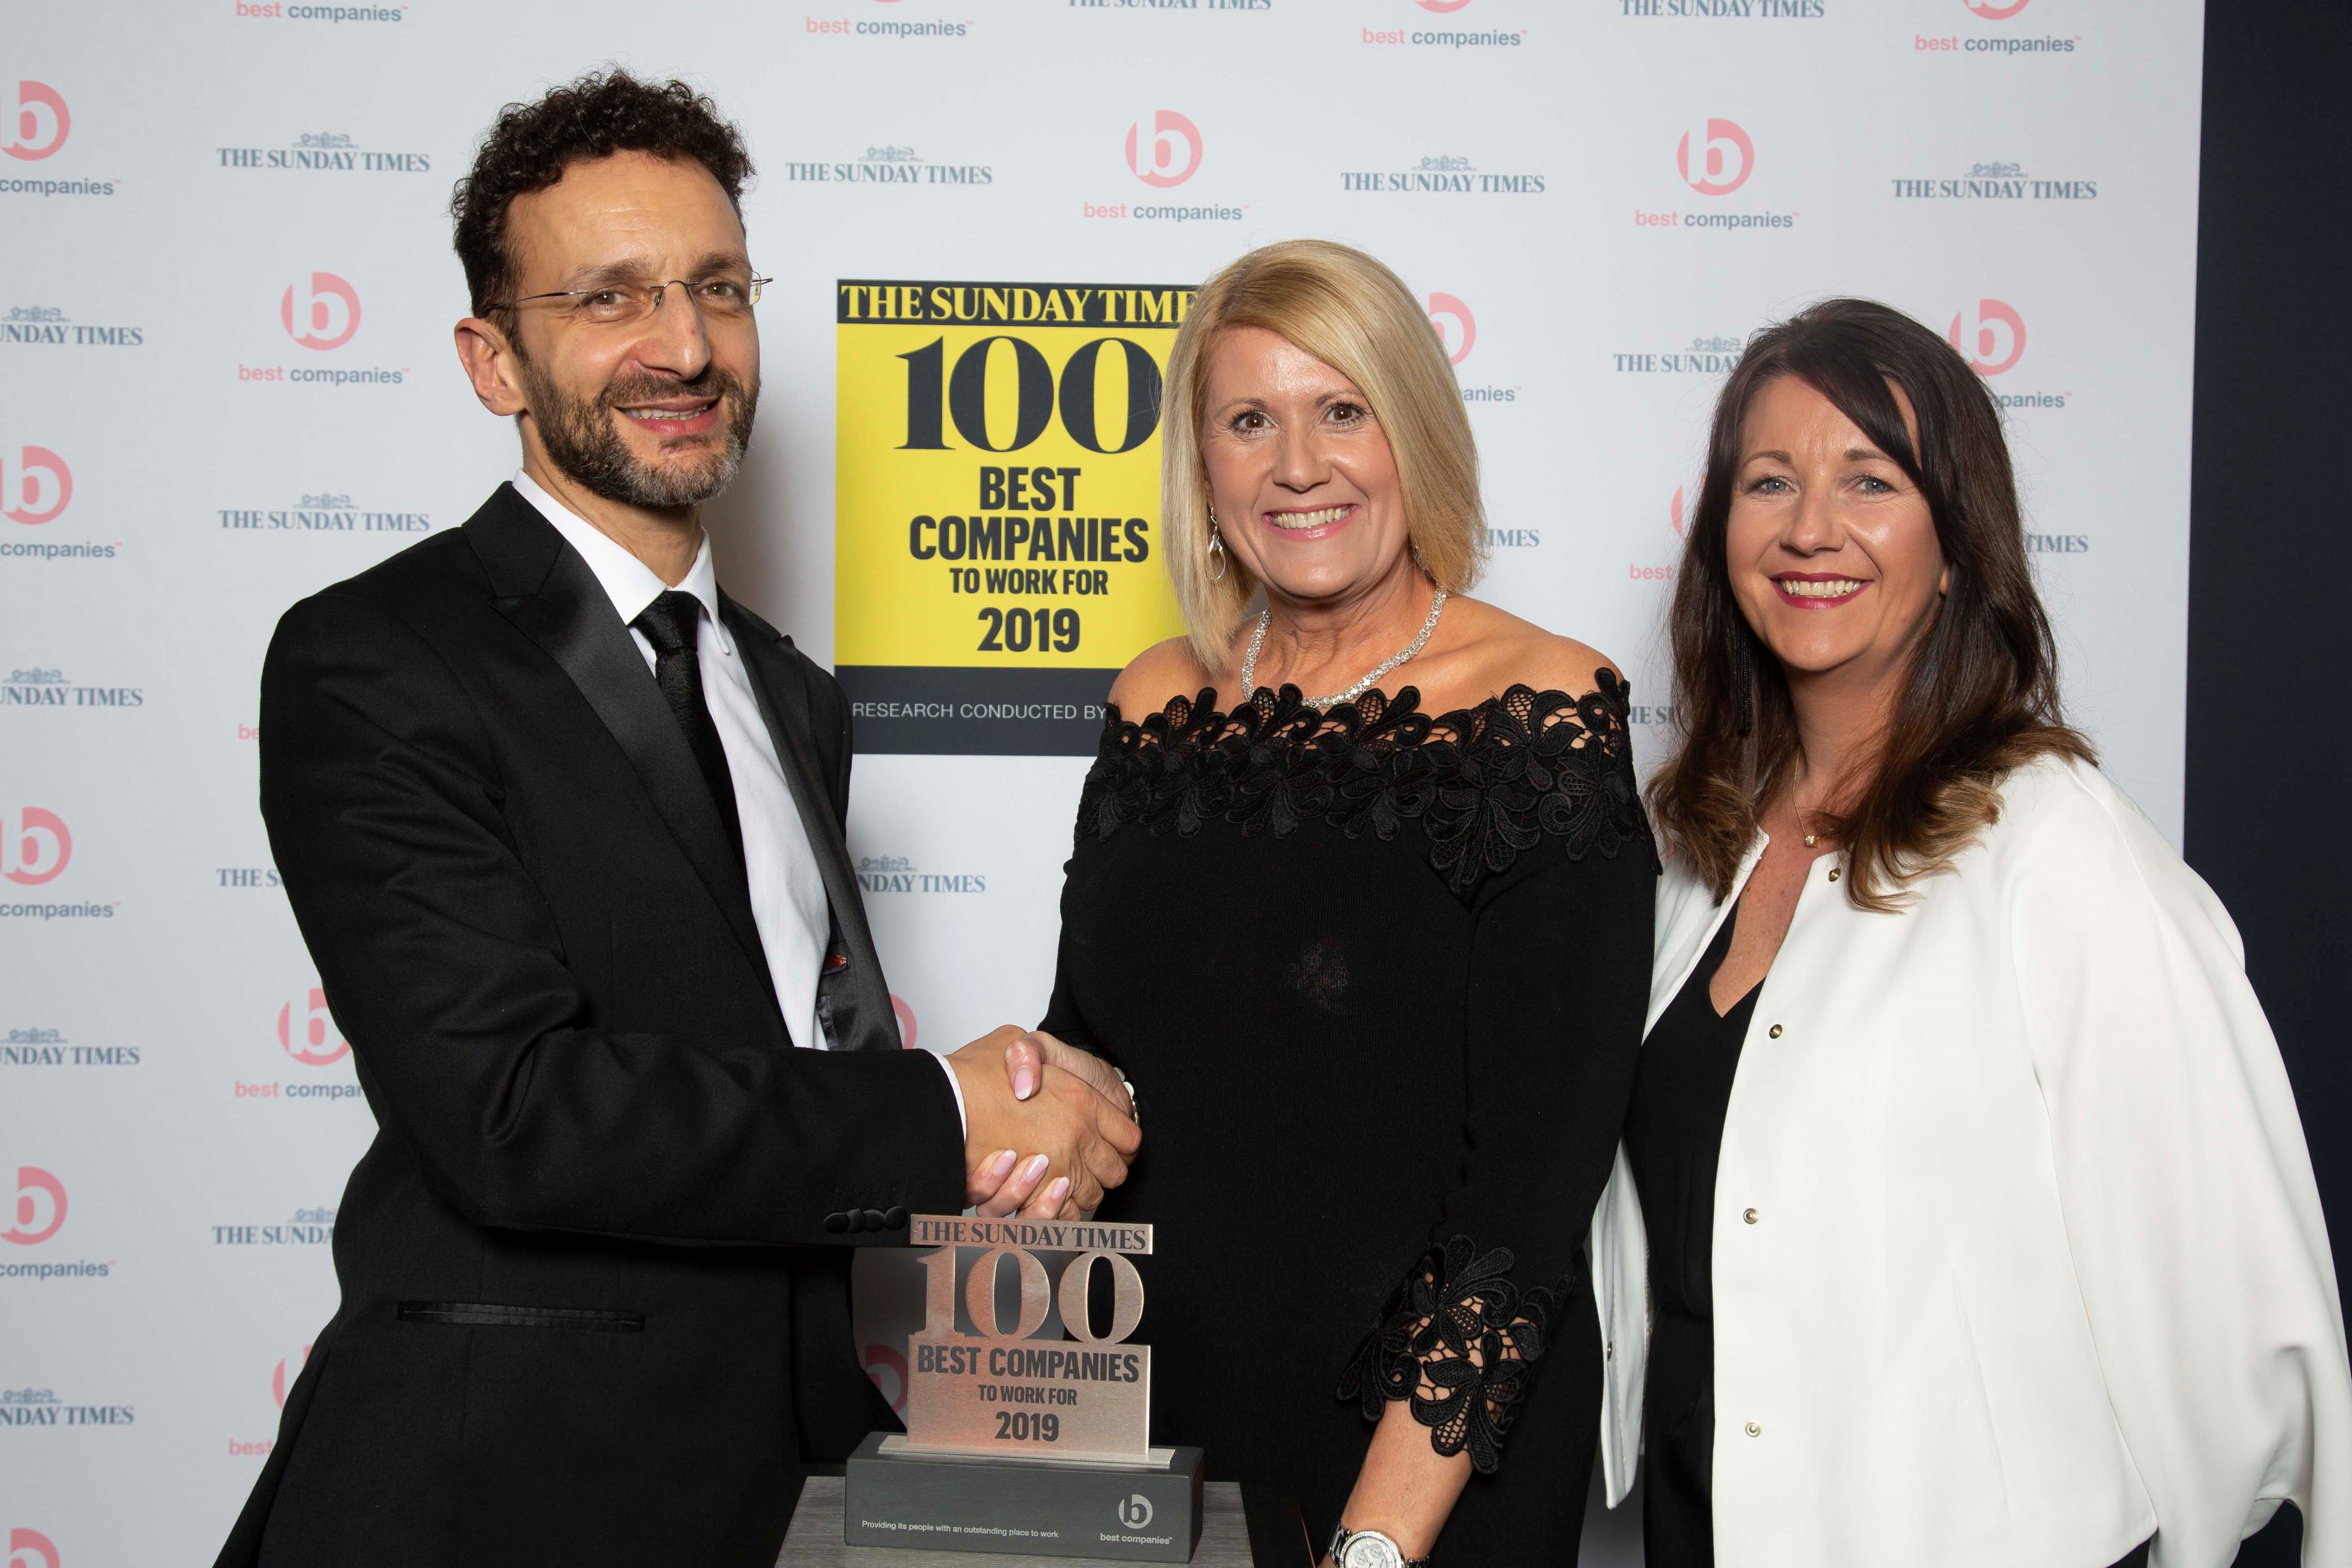 Hays Travel named in Sunday Times 100 Best Companies to Work for list